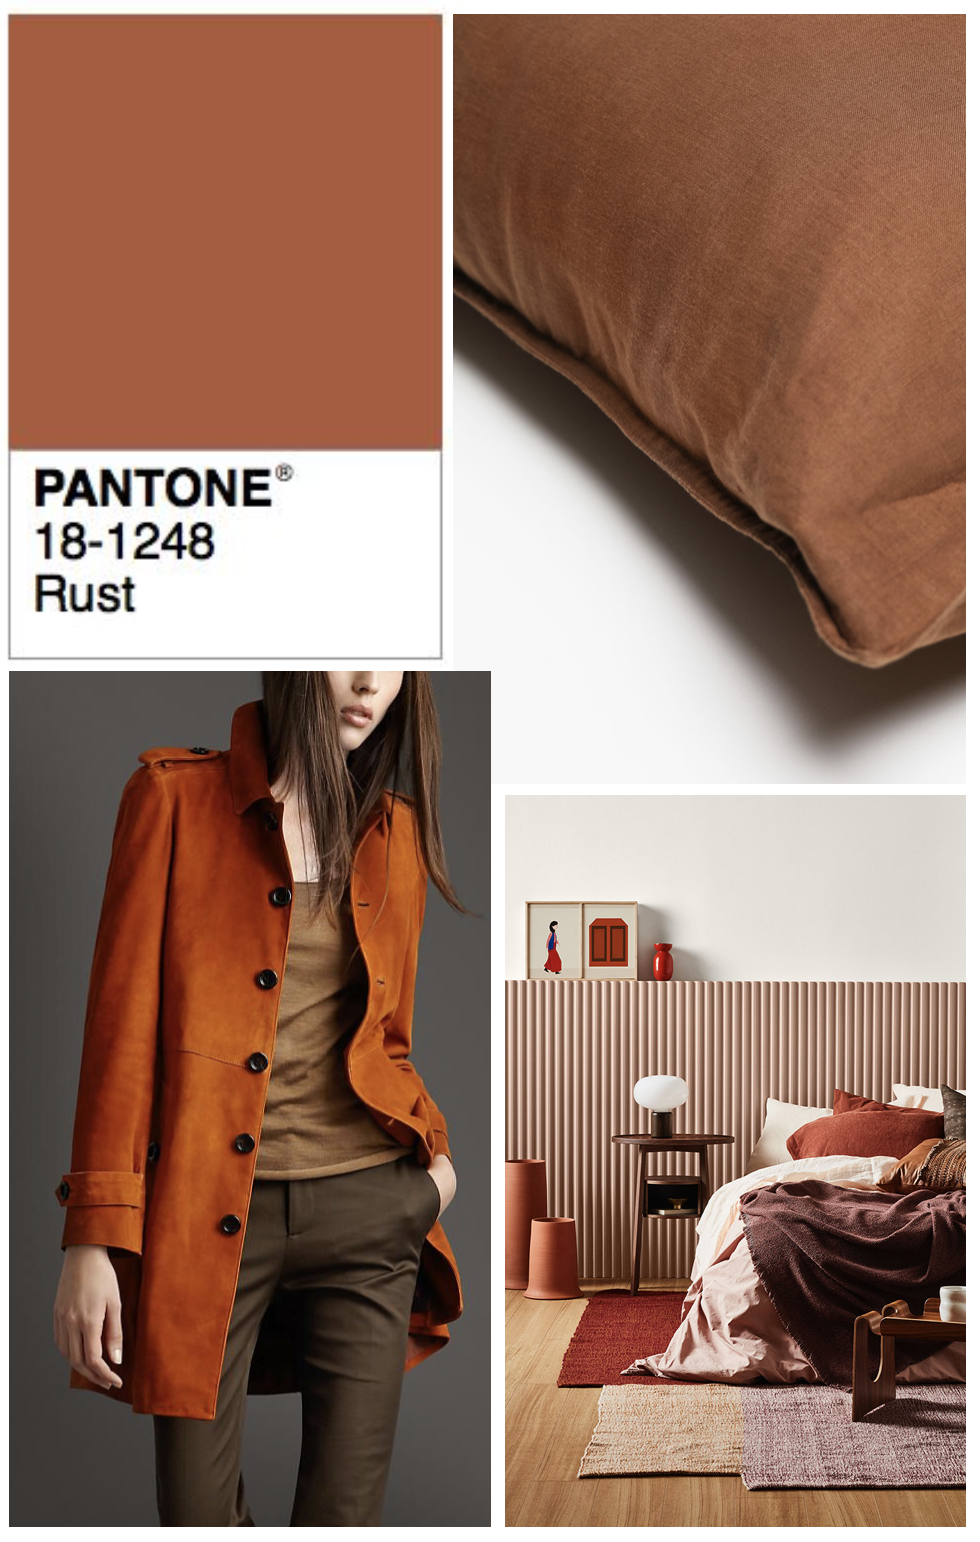 ilaria fatone moodboard for rust tones in winter 2018